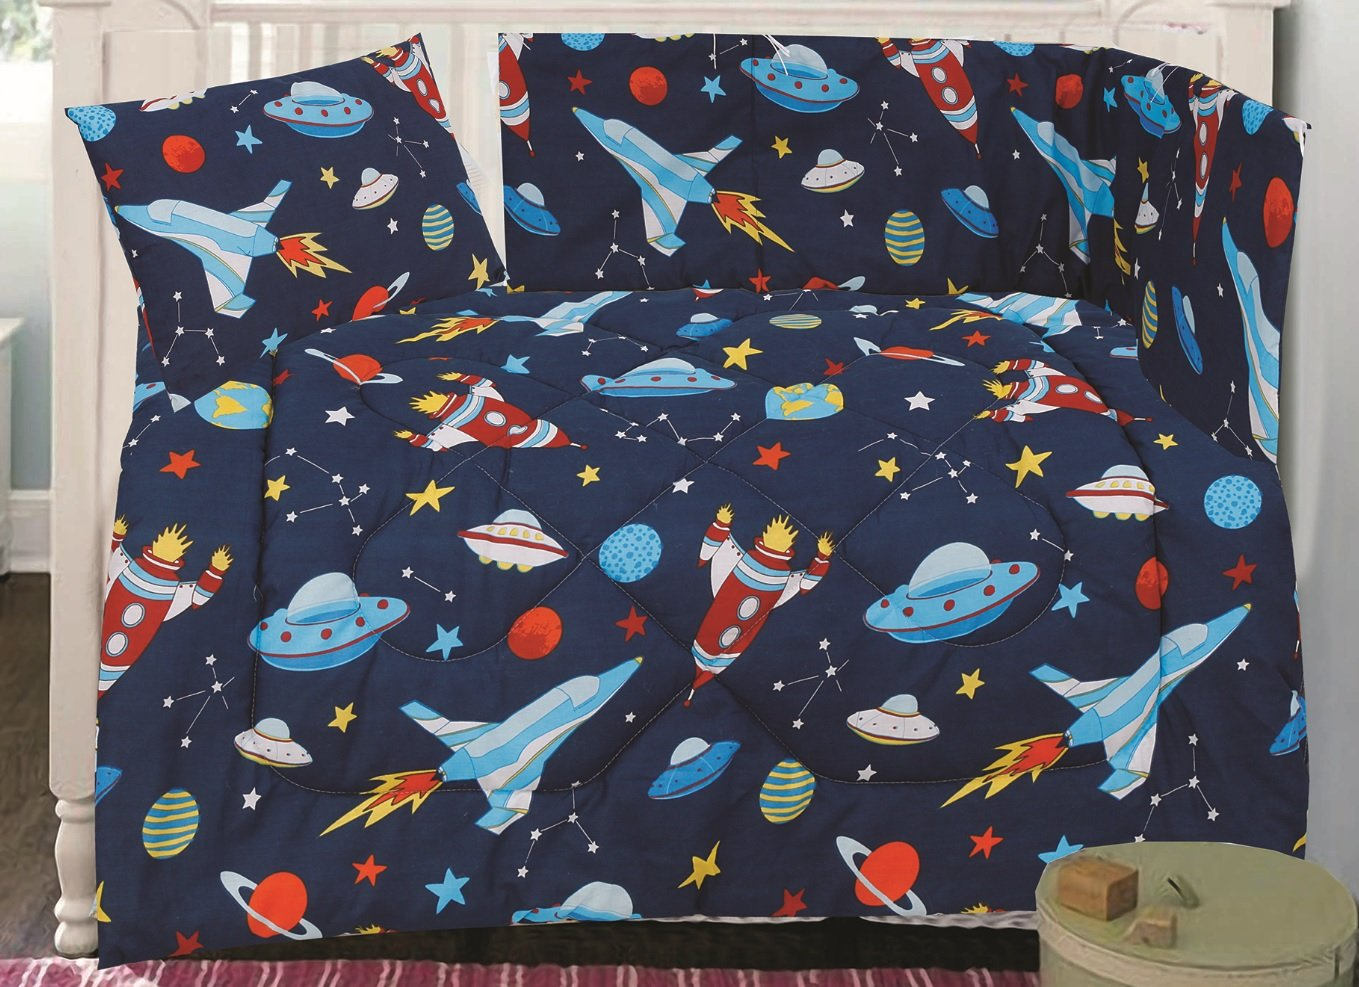 Love2Sleep COTTON RICH 3 PIECE COT QUILT, PILLOW & BUMPER SET - IDEAL FOR NURSERY BEDDING - BLAST OFF